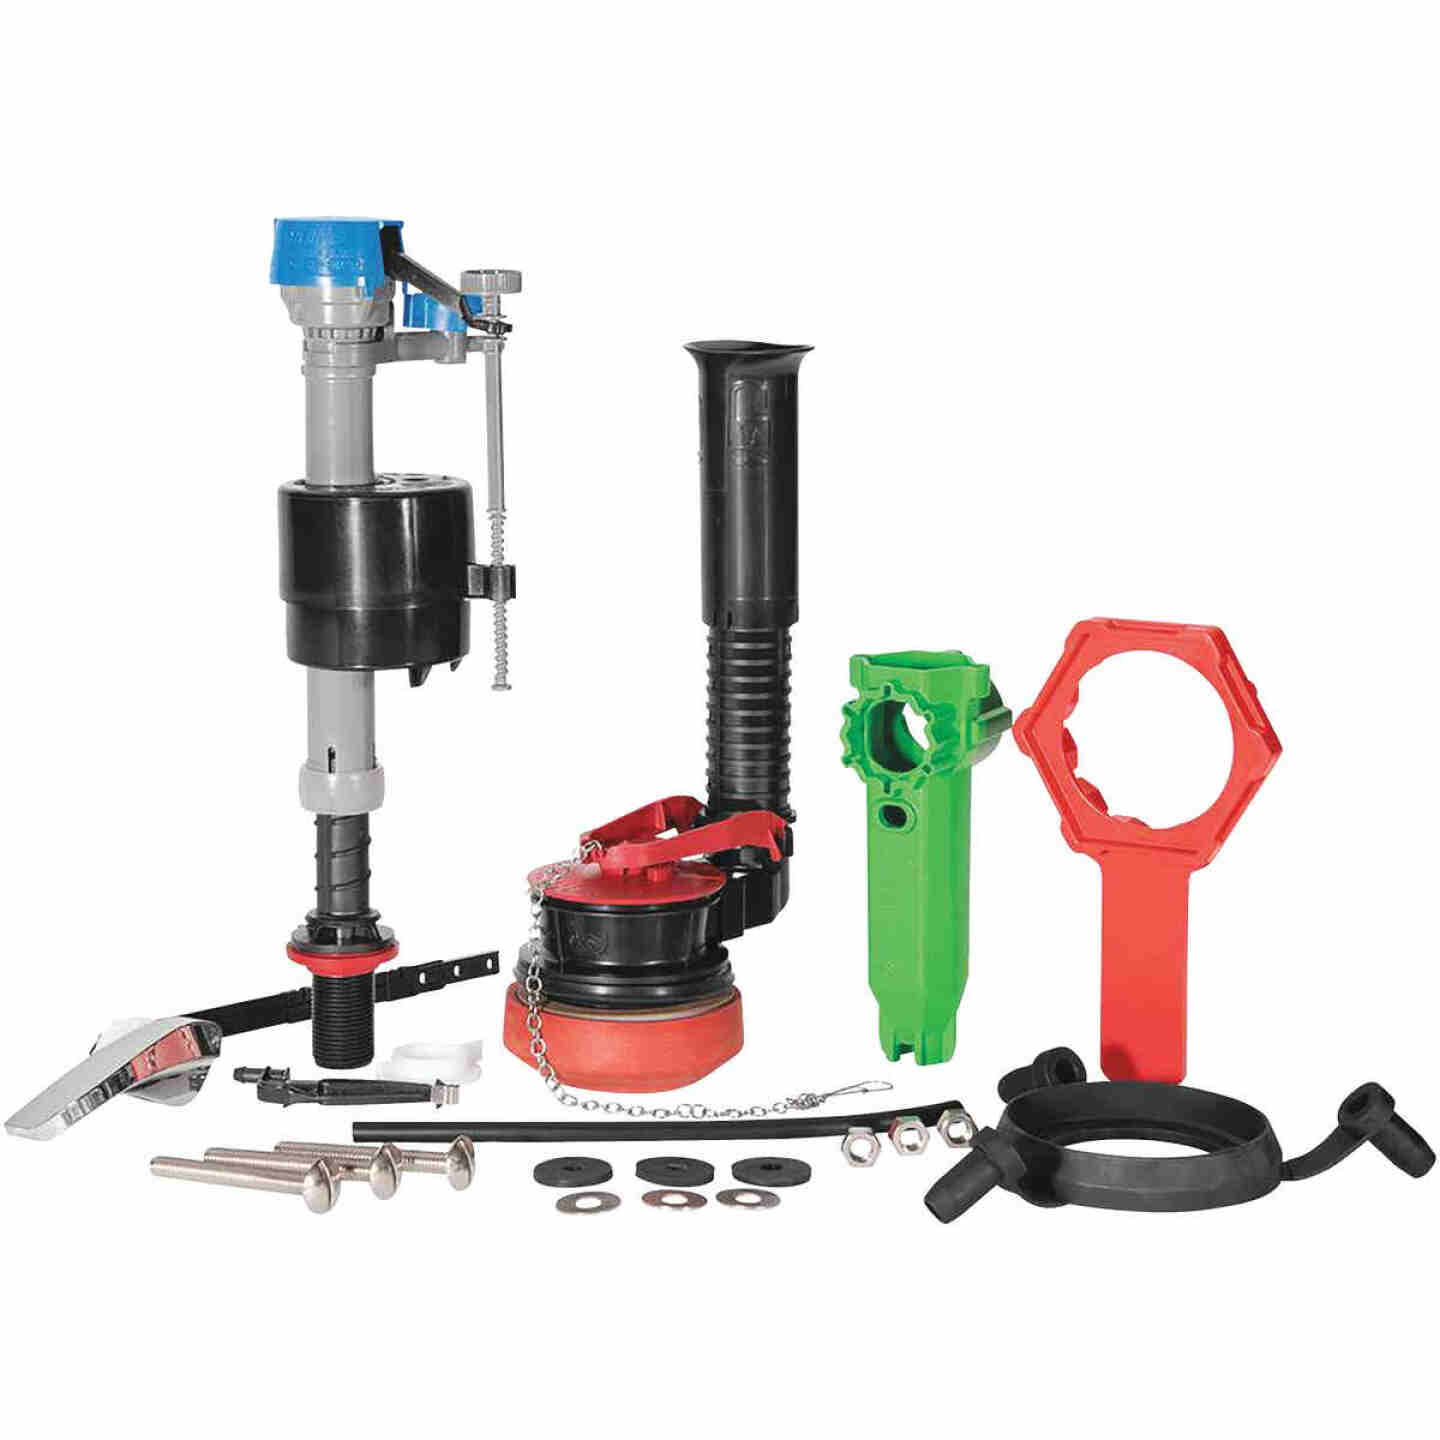 Fluidmaster PerforMAX 2 In. Universal Complete Toilet Repair Kit w/Install Tools Image 2